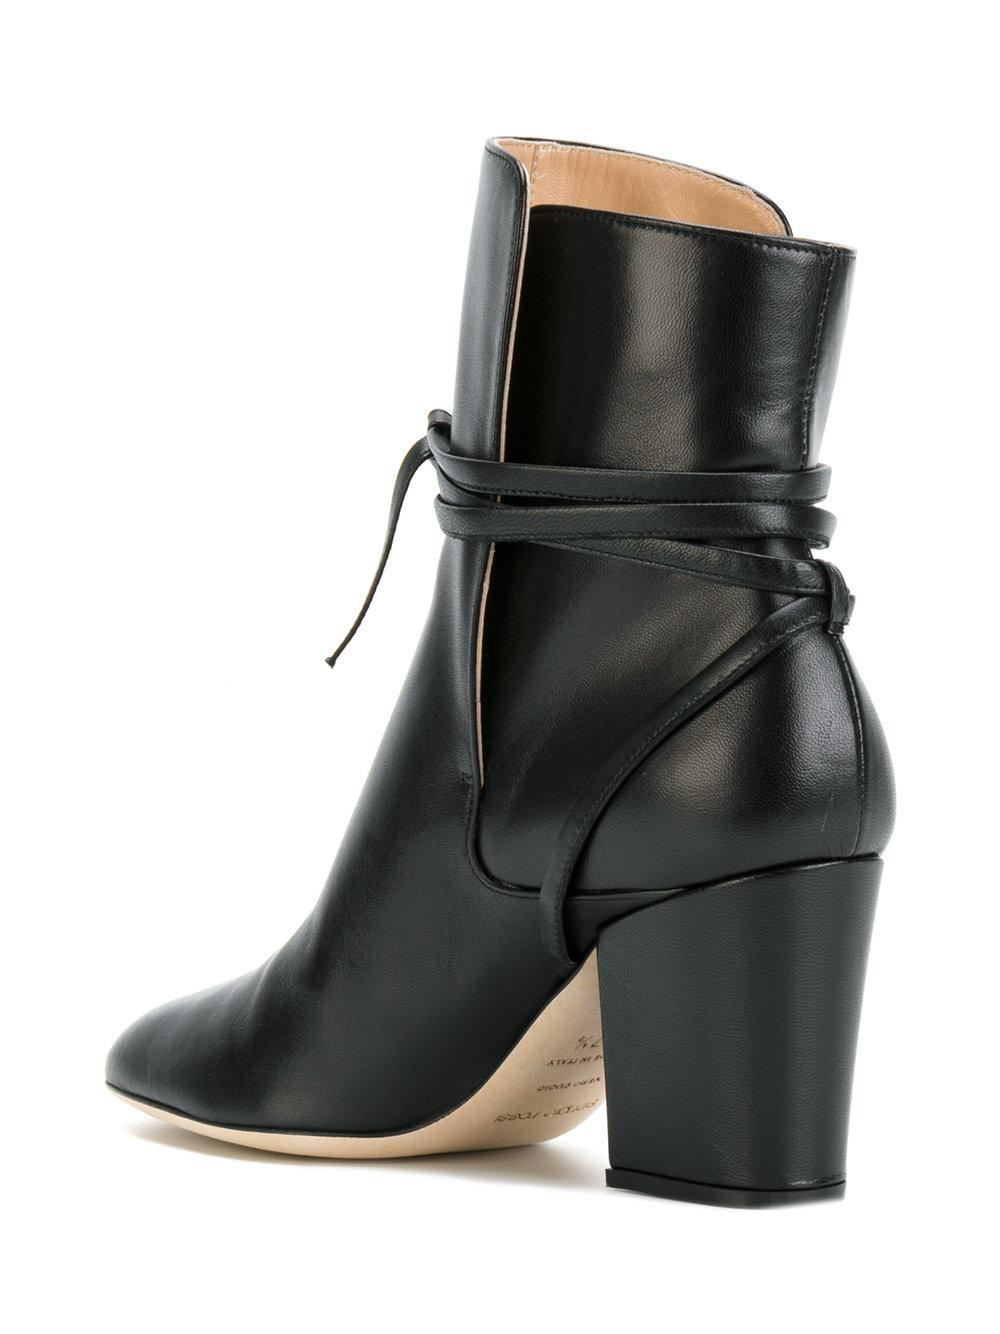 Sergio Rossi Leather Ankle Boots With Tie in Black